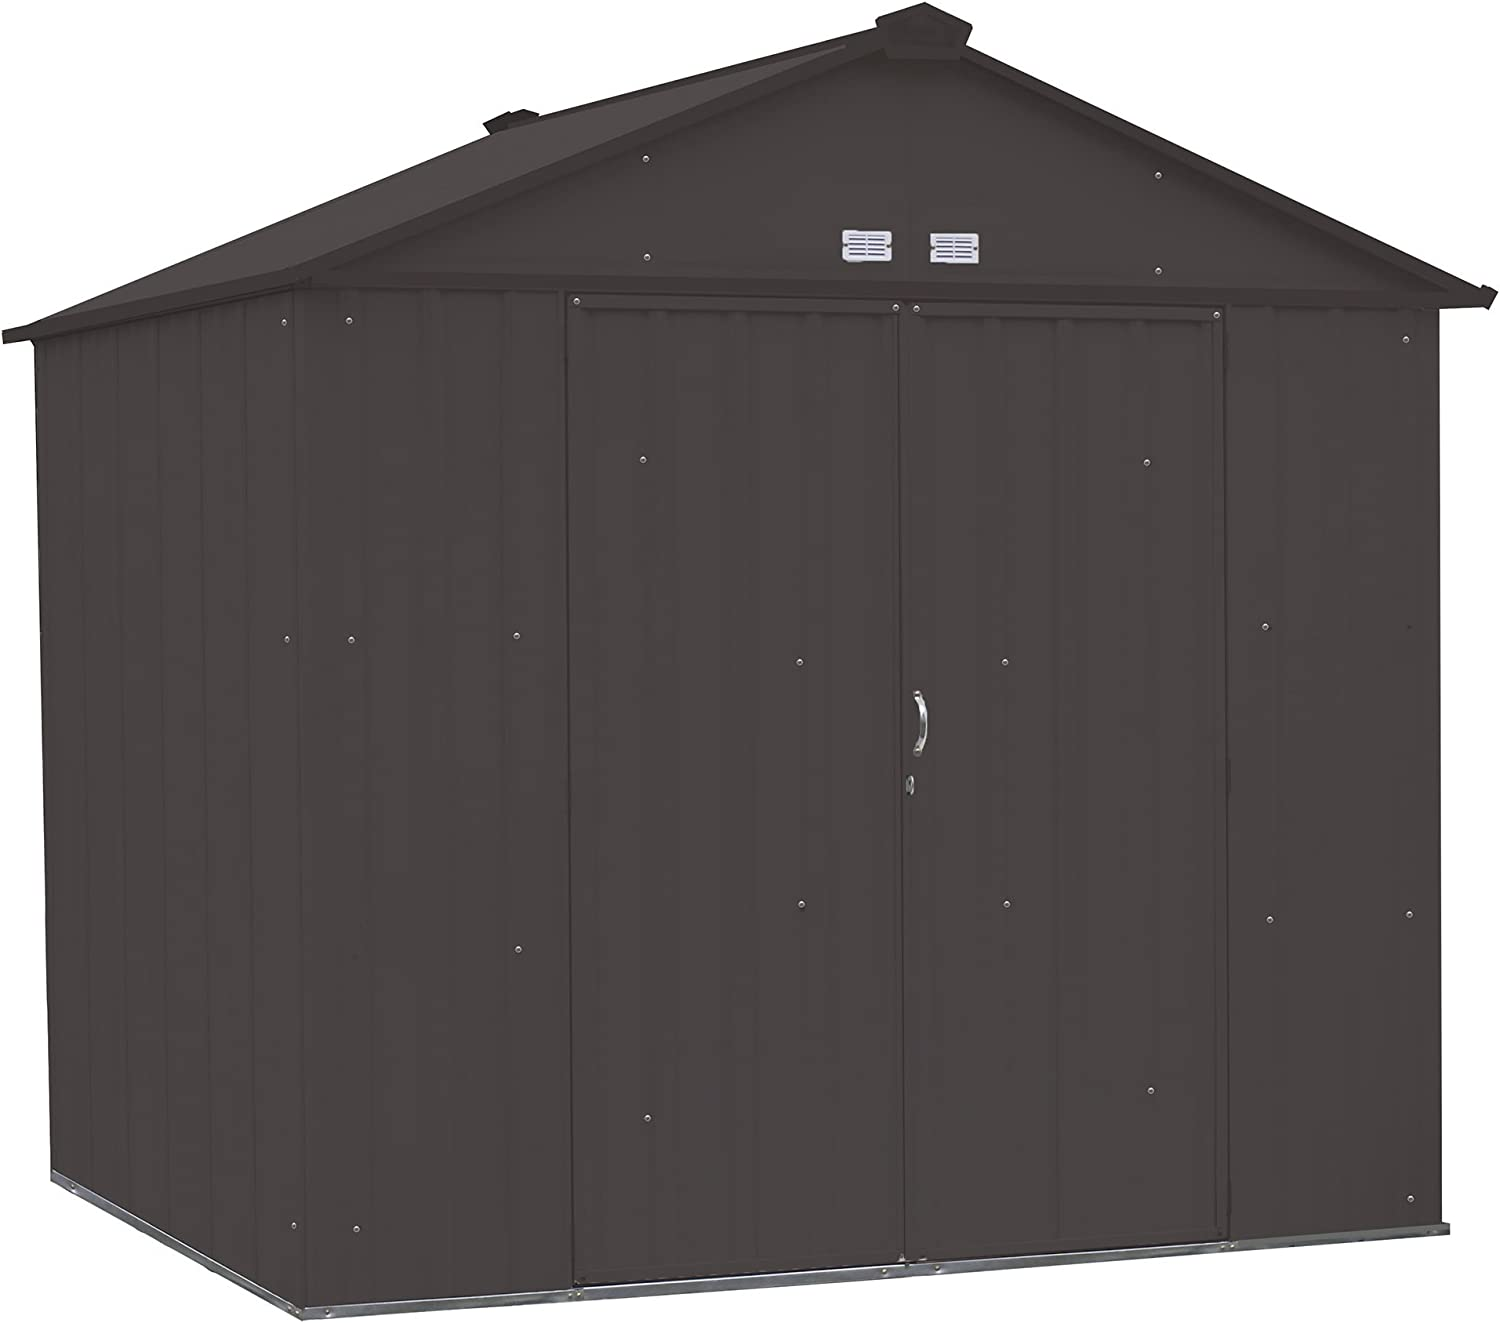 Arrow EZEE Shed High Gable Steel Storage Shed, Charcoal, 8 x 7 ft.